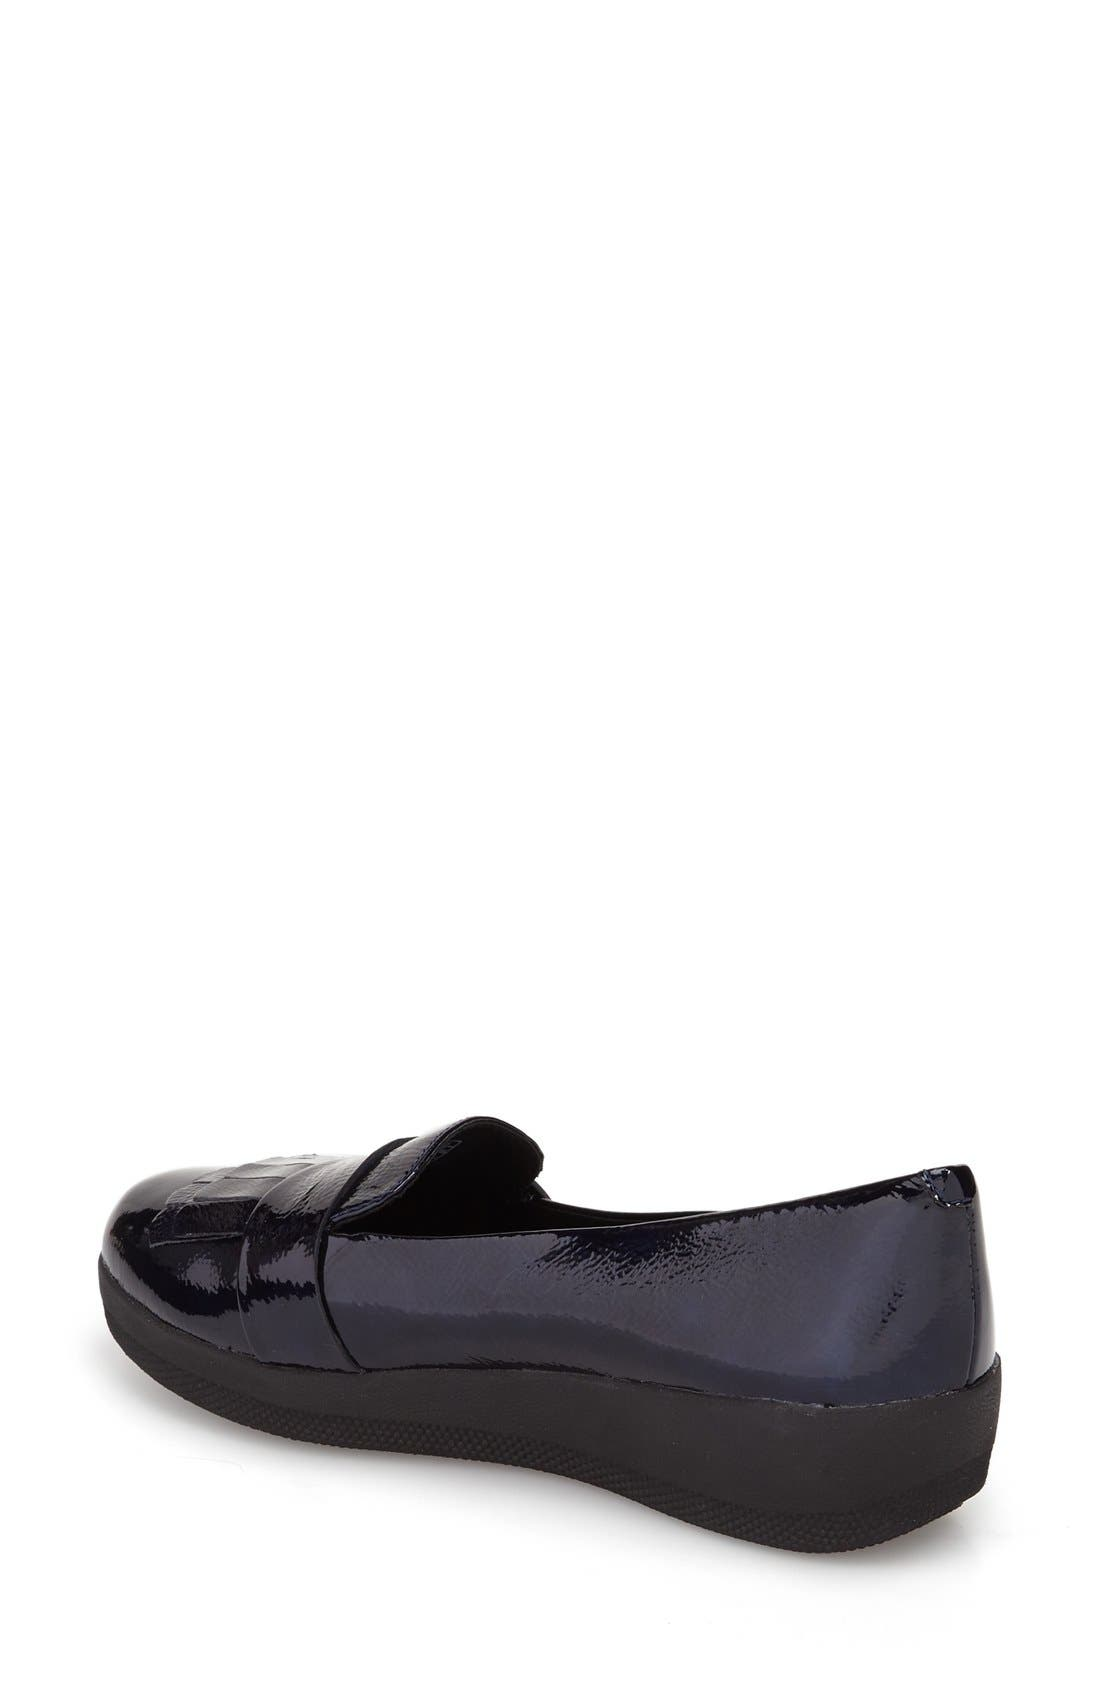 Fringey Loafer,                             Alternate thumbnail 13, color,